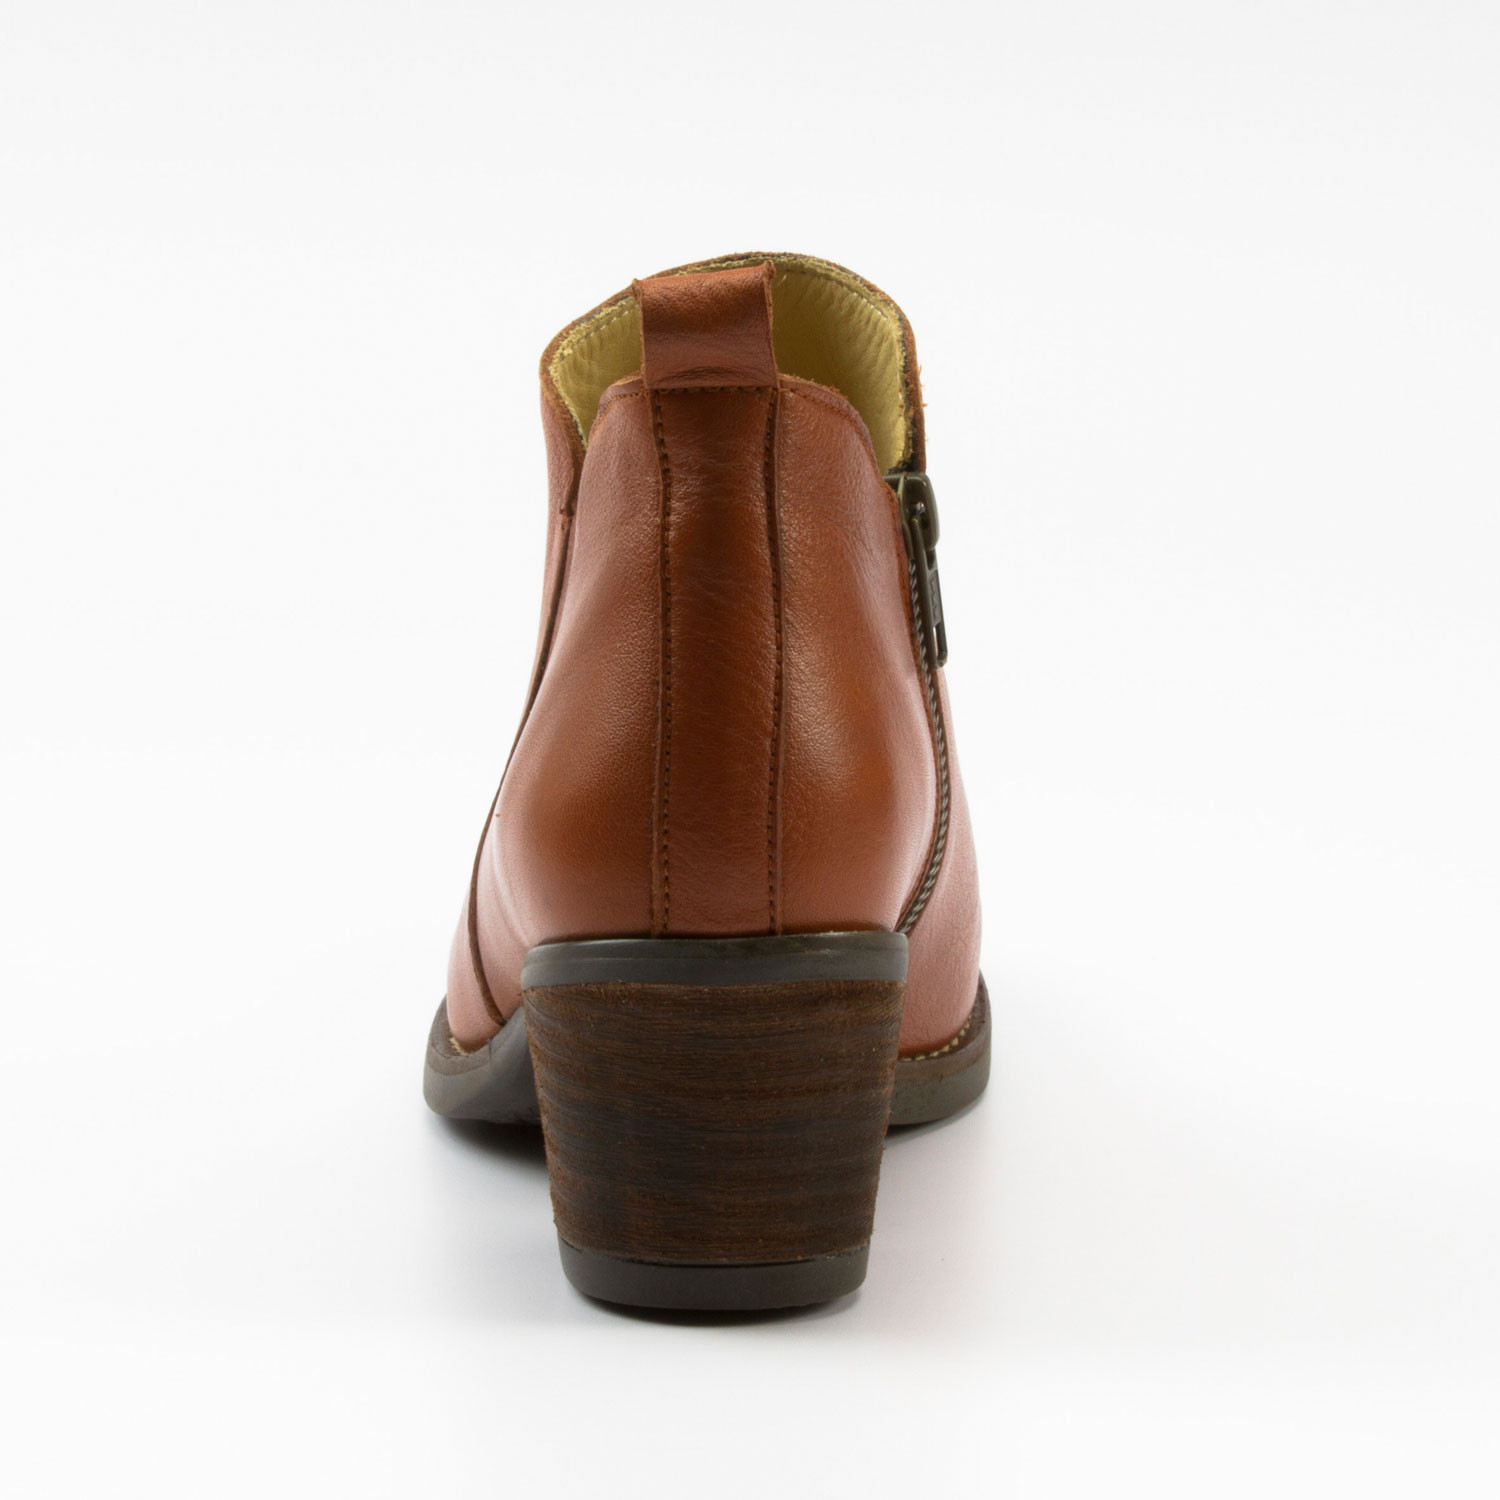 Bio-Ankle-Boot, cognac